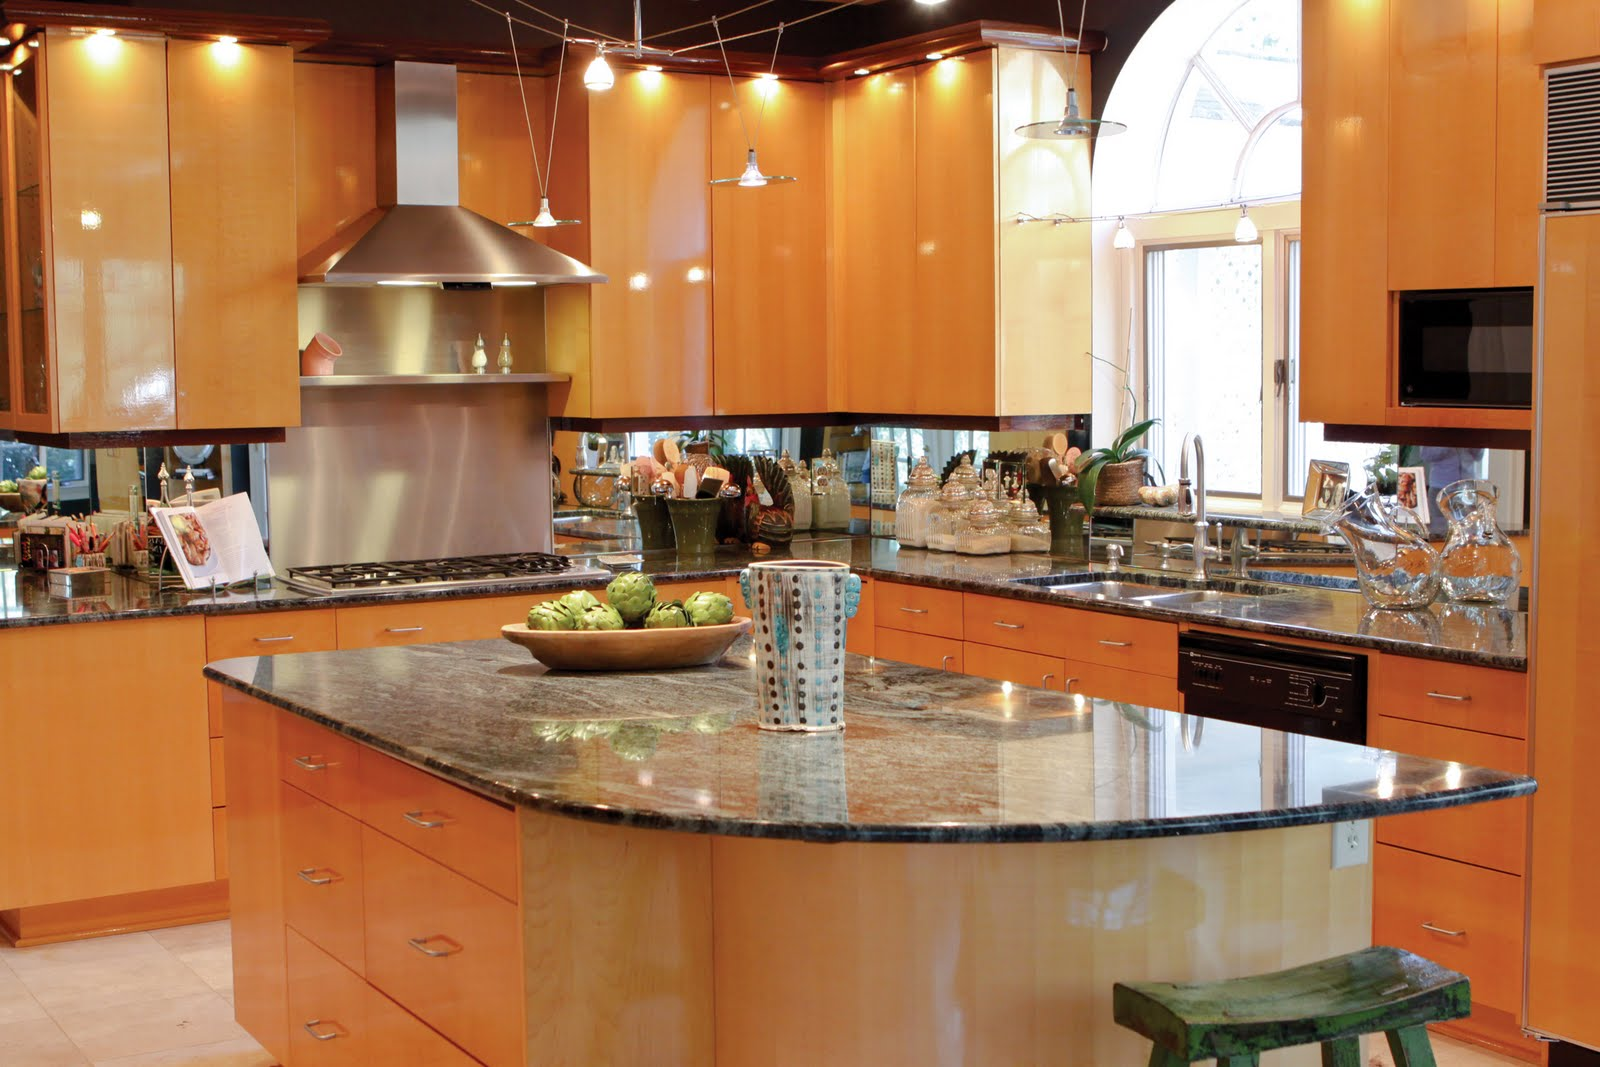 In Polite Company: Le Tour of Kitchens: The Simmons Home